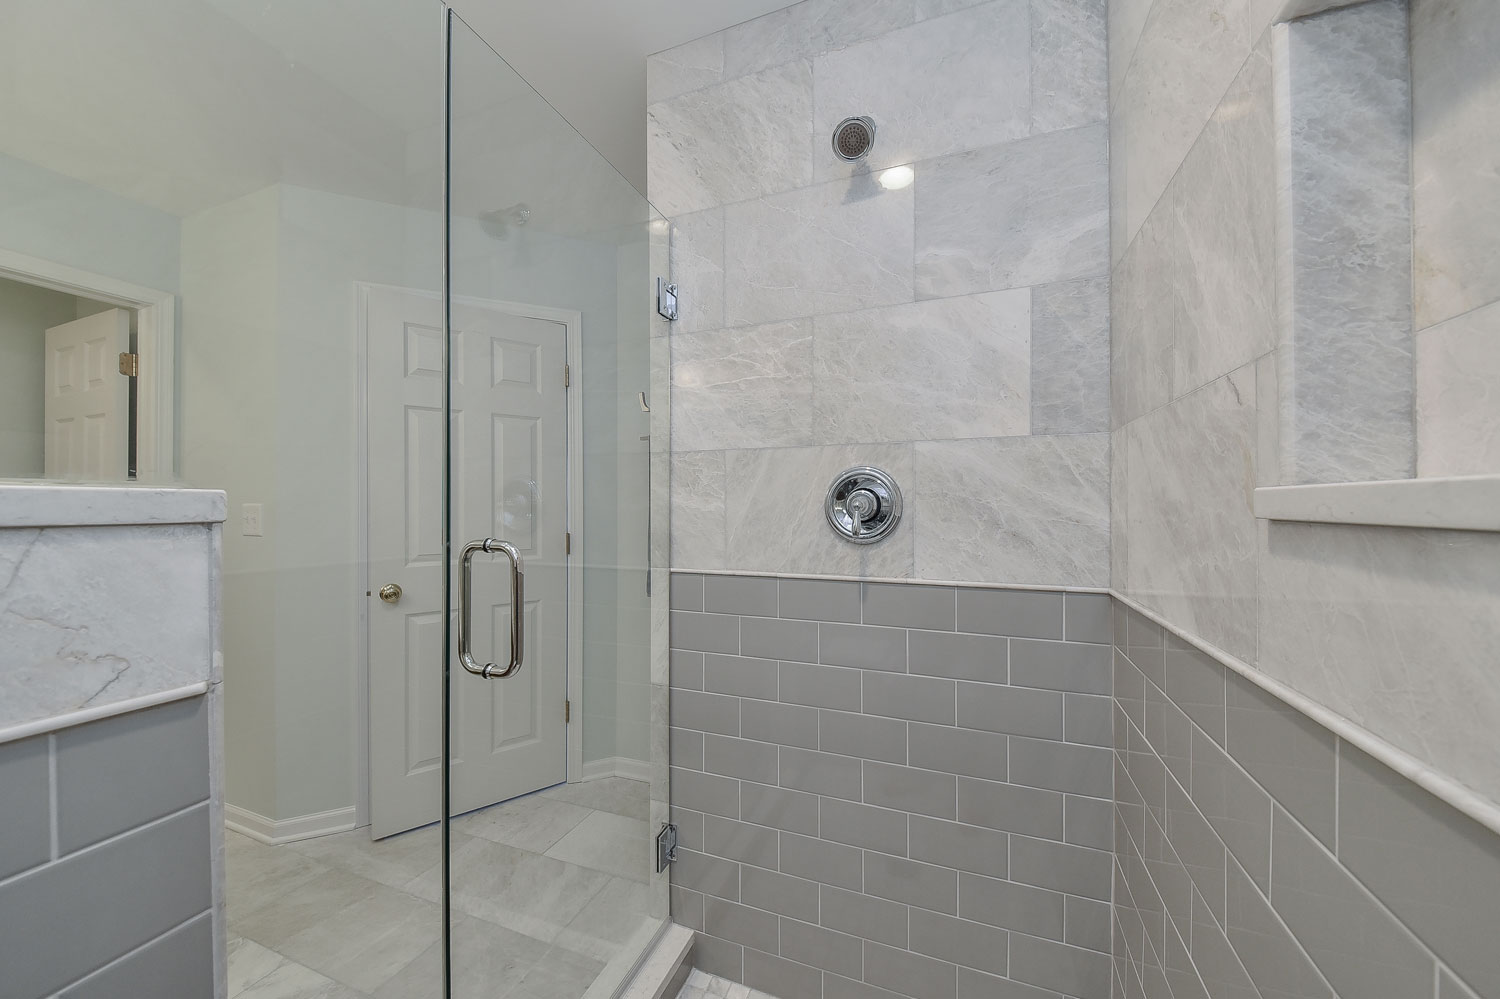 How To Build A Walk In Tile Shower.Richard S Master Bathroom Remodel Pictures Home Remodeling